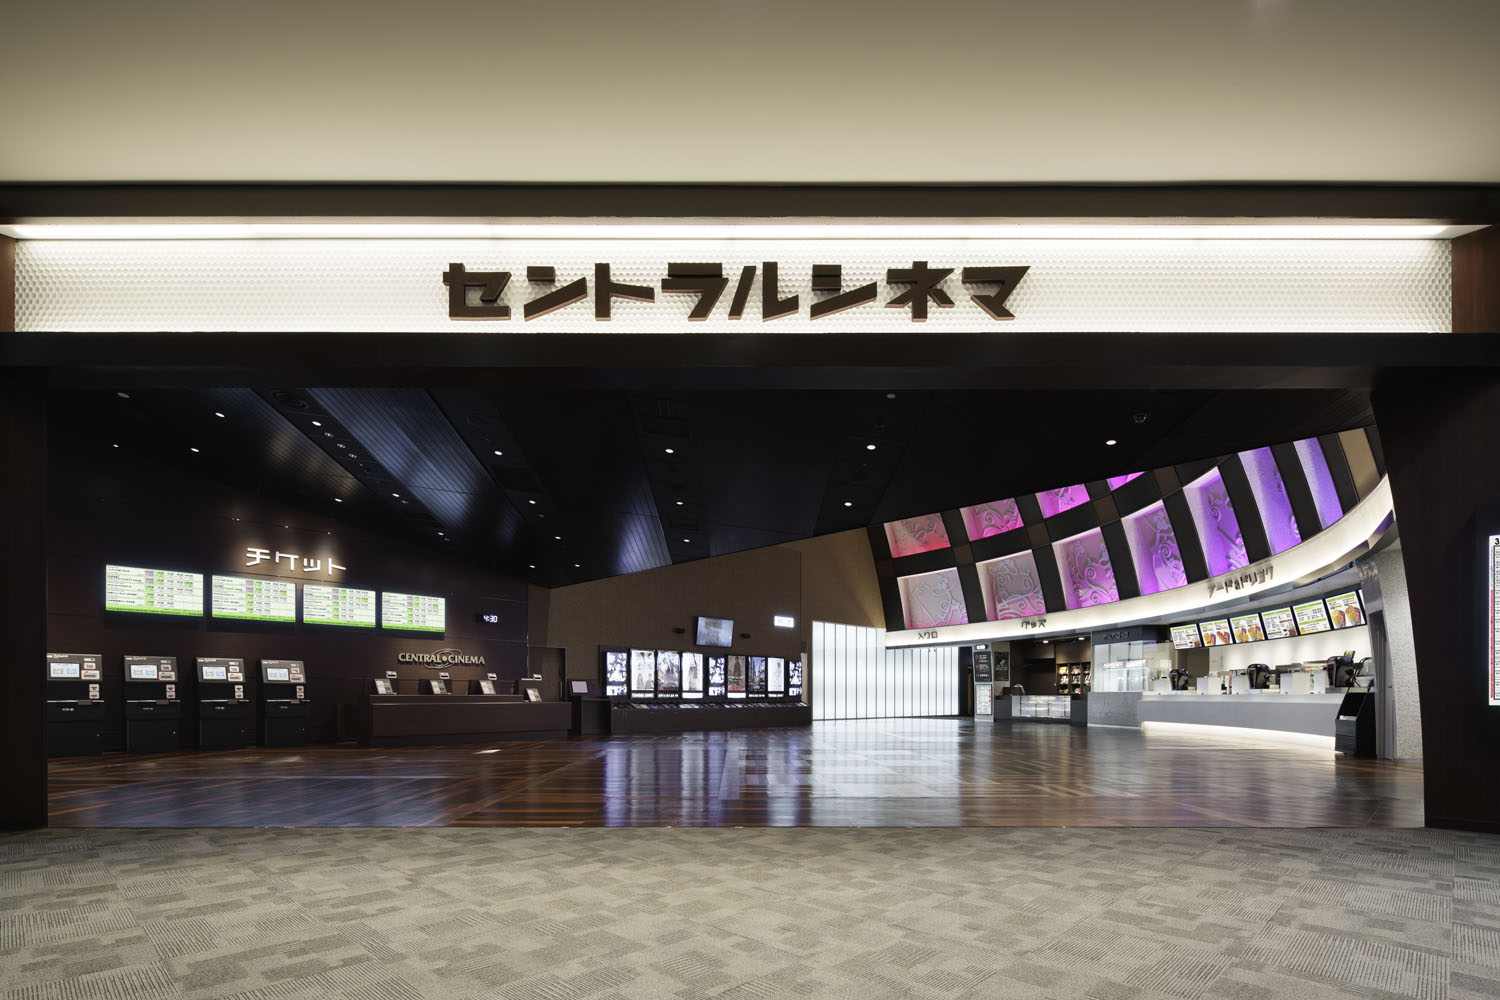 Central Cinema Brings Smart Laser Cinema Experience To Japanese Audiences Barco